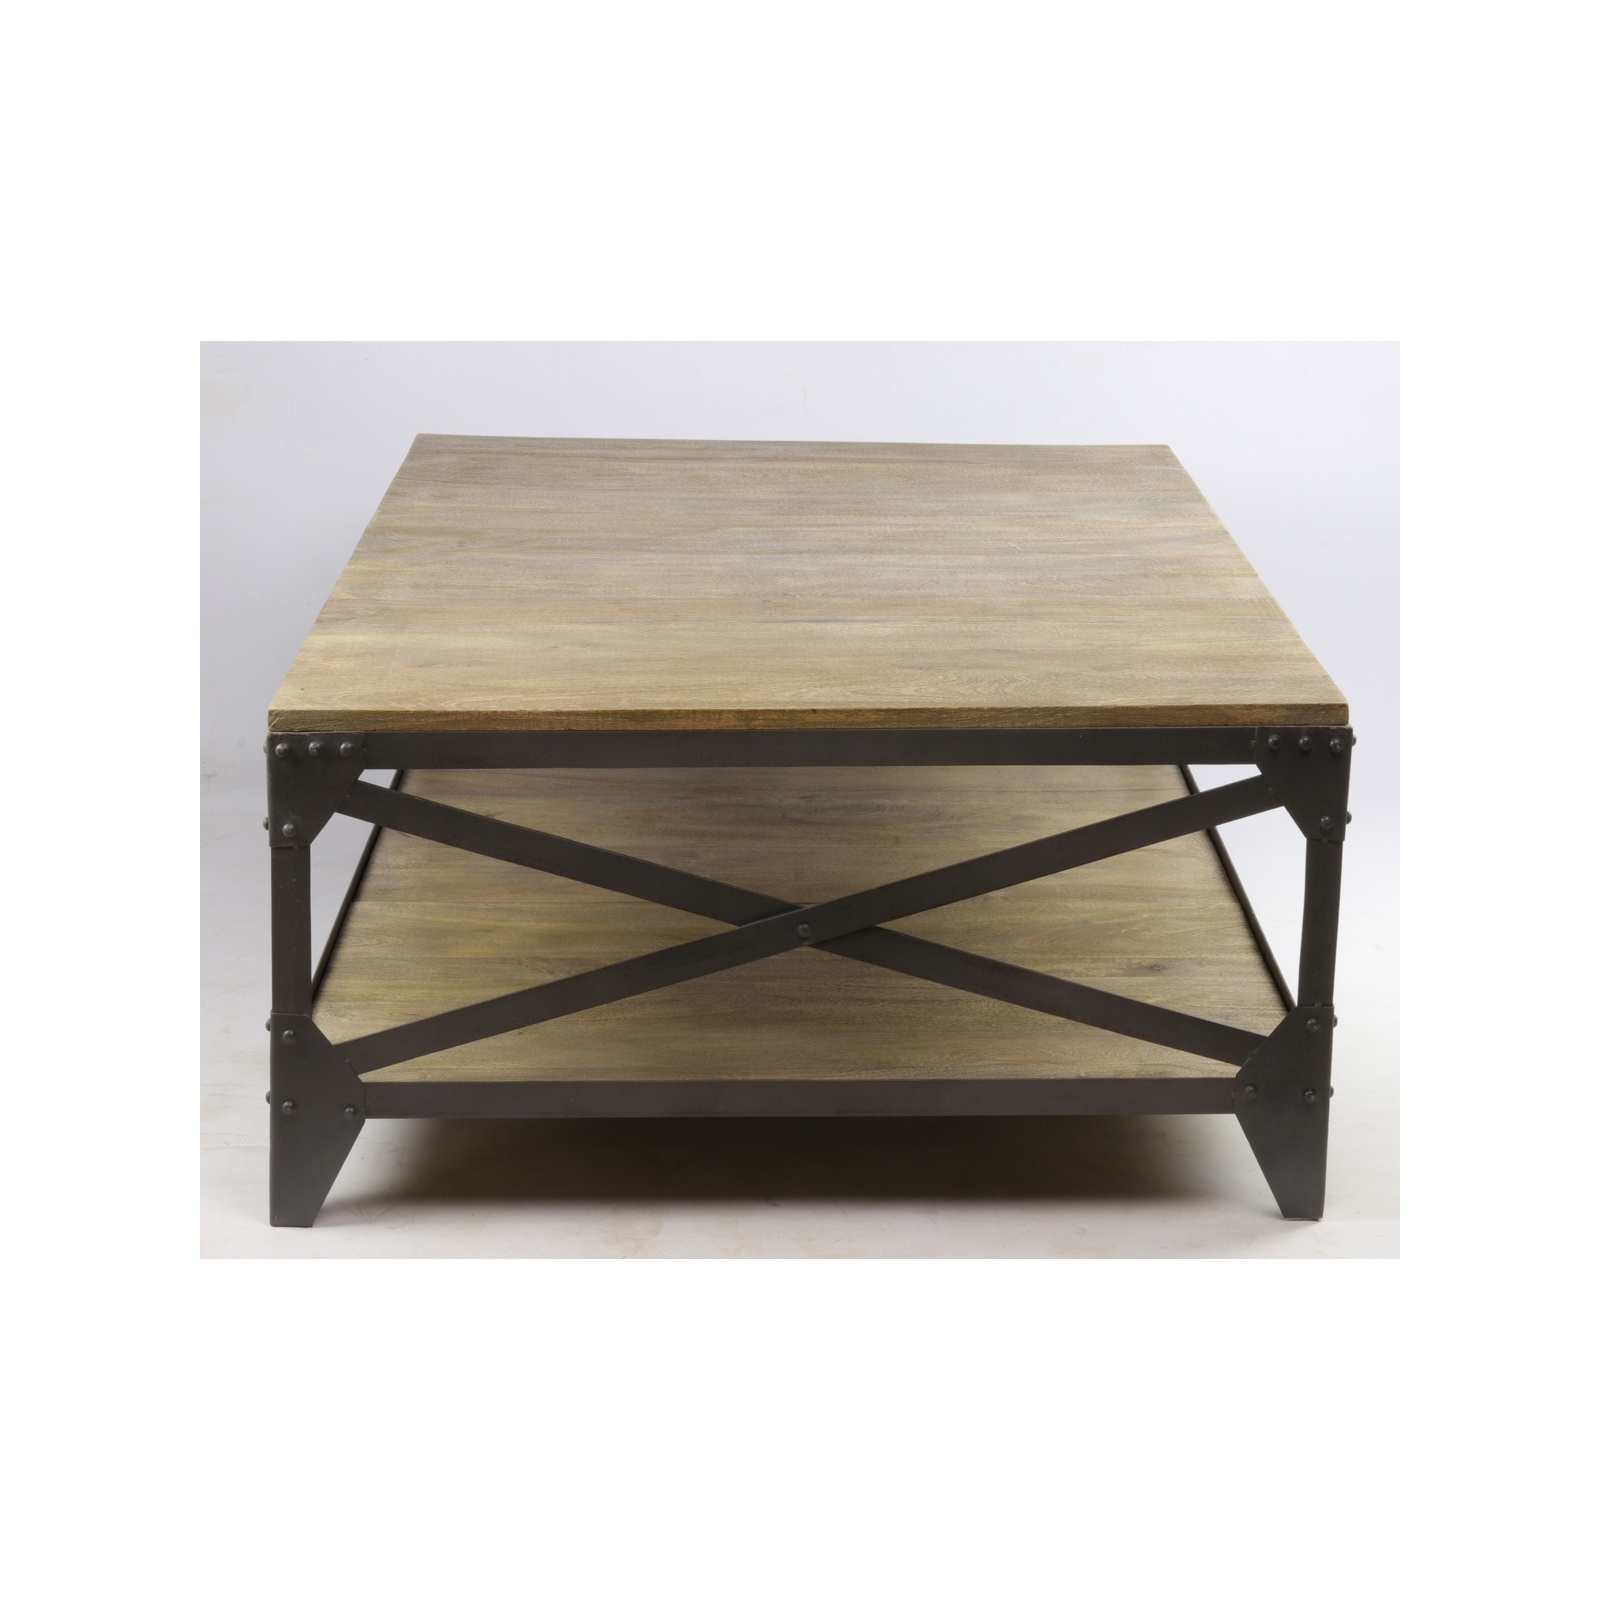 Banc Jardin Fer Table Basse Industrielle